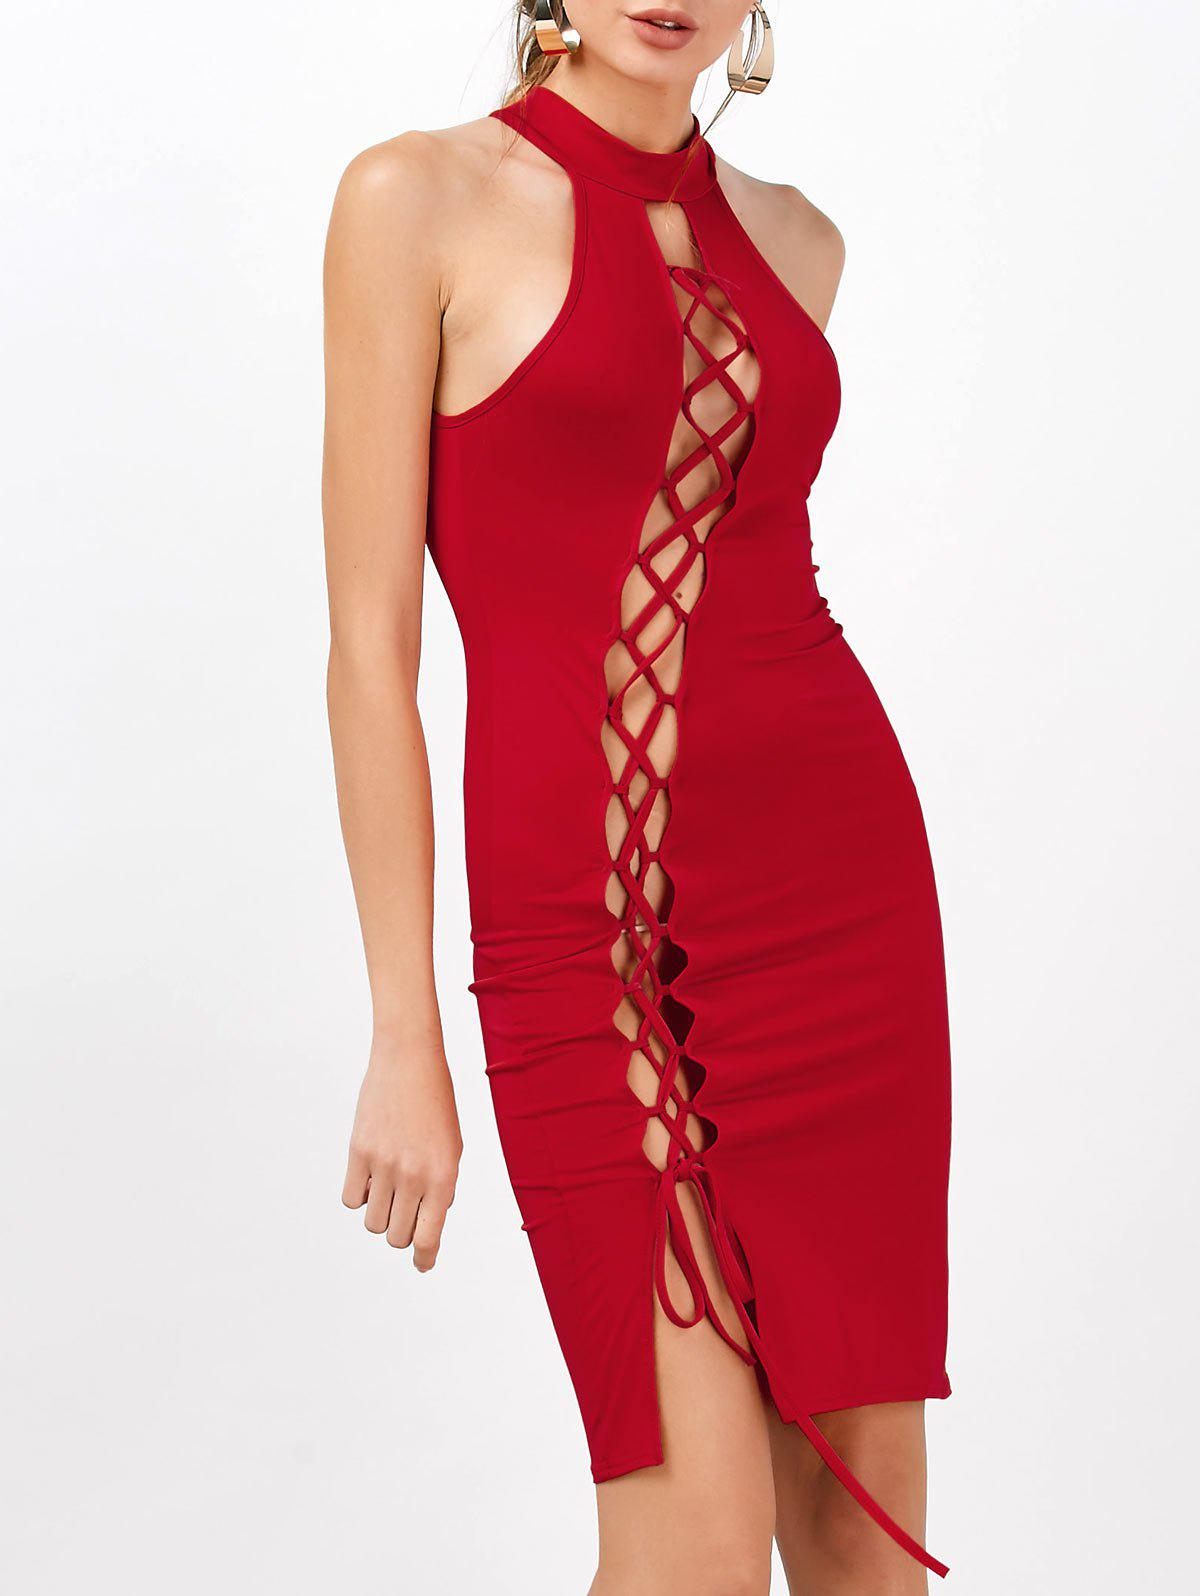 Criss Cross Sleeveless Backless Club Bodycon Dress - RED M